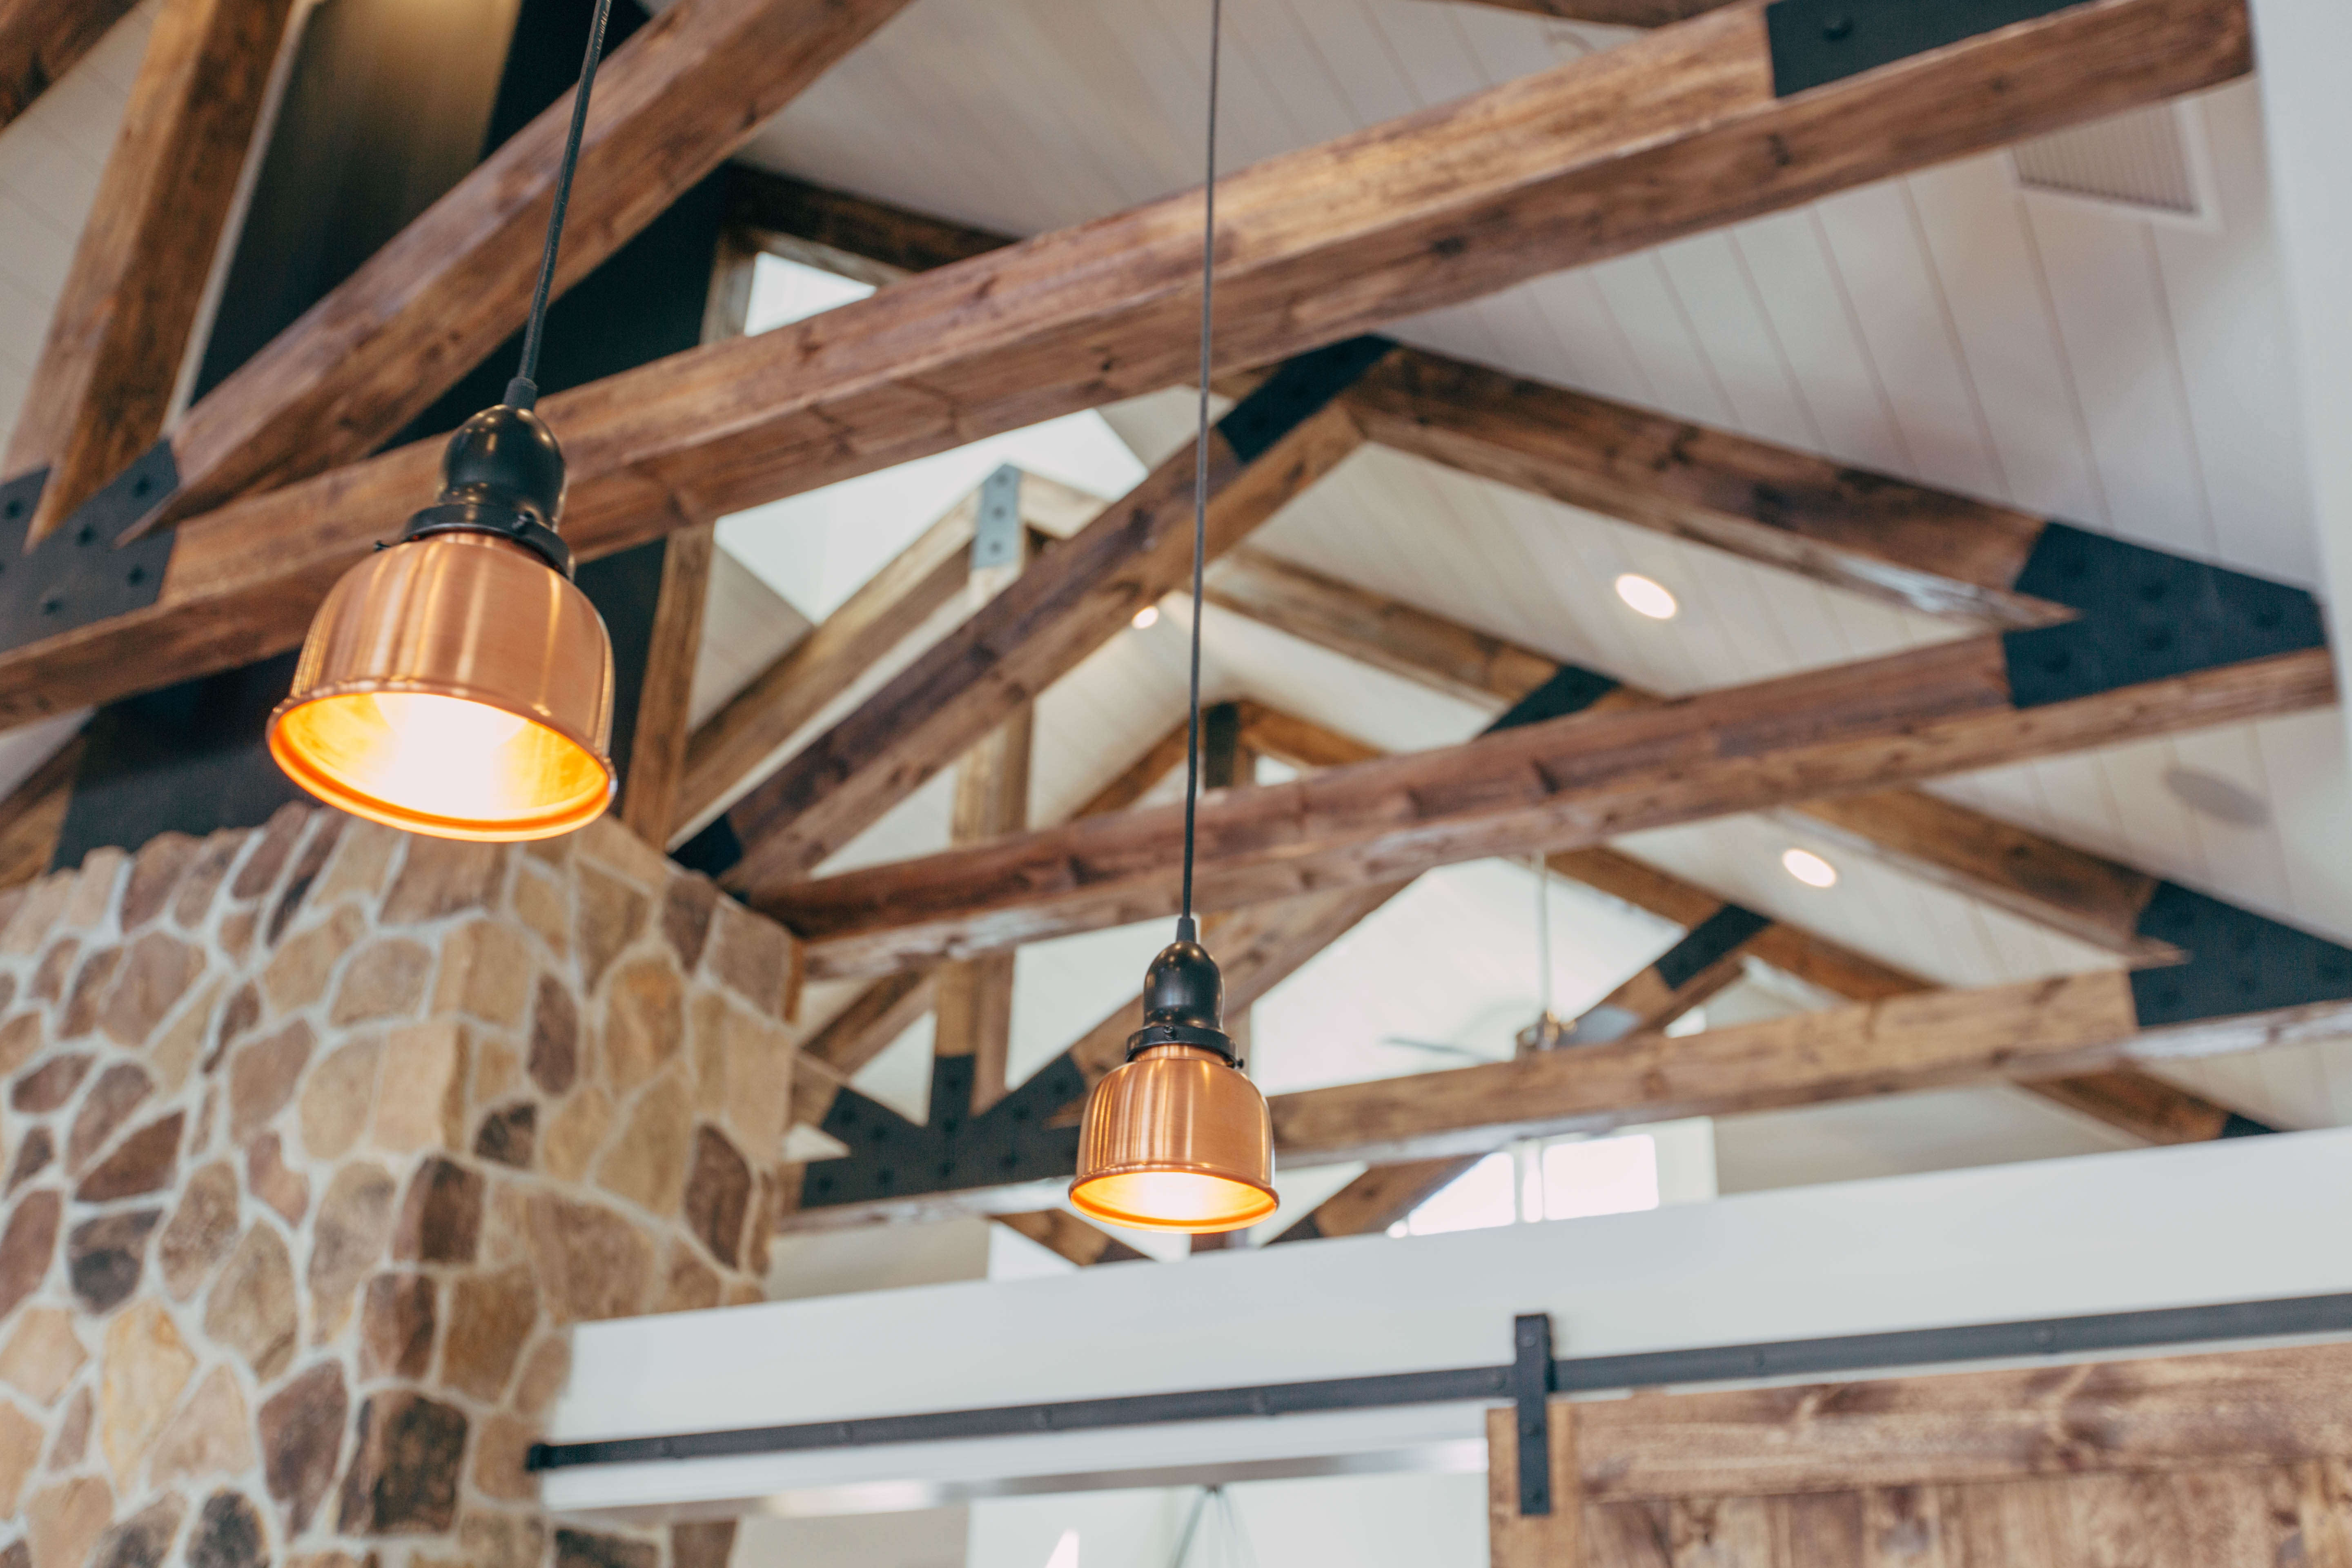 Update old light fixtures to options that work better with the design of your home